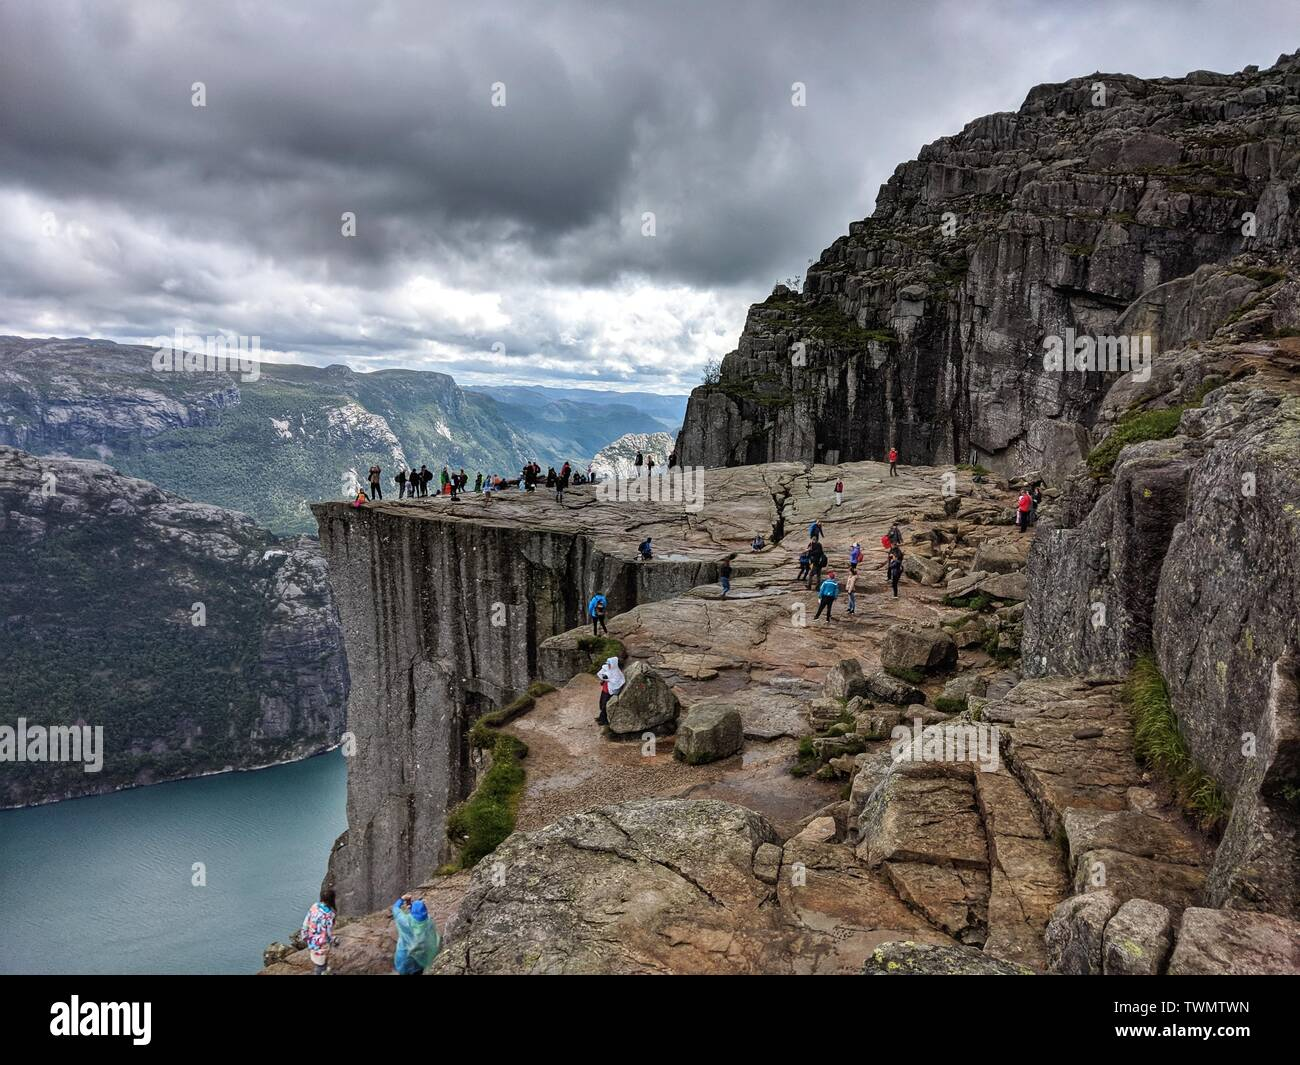 June 21, 2019 - Preikestolen, Norway - Hikers enjoy their time taking a break and making selfies on top of the fjord while at Pulpit Rock (Preikestolen) in Norway. (Credit Image: © Sachelle Babbar/ZUMA Wire) - Stock Image